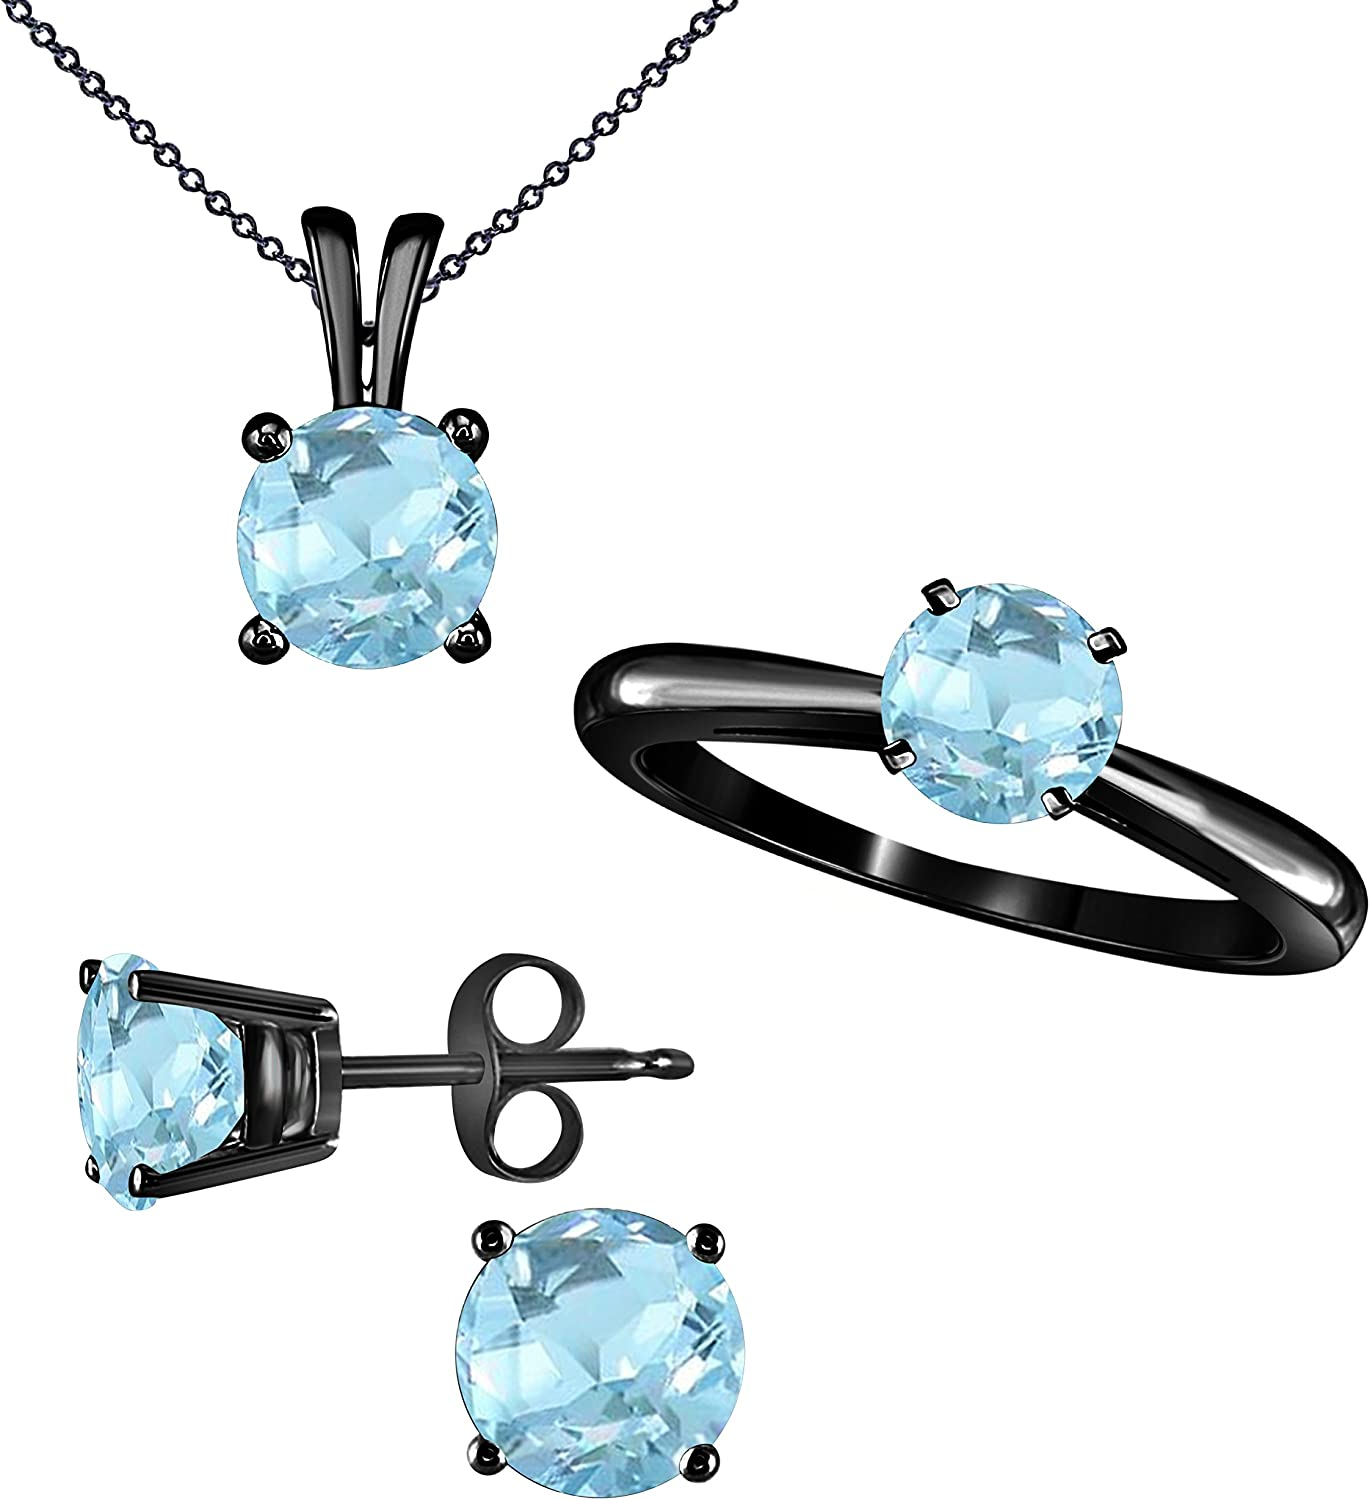 Birthstone Sets 6 MM Round Cut Created Aquamarine Ring, Pendant and Matching Earrings Set in 14k Gold Plated Alloy Jewelry Sets for Women's